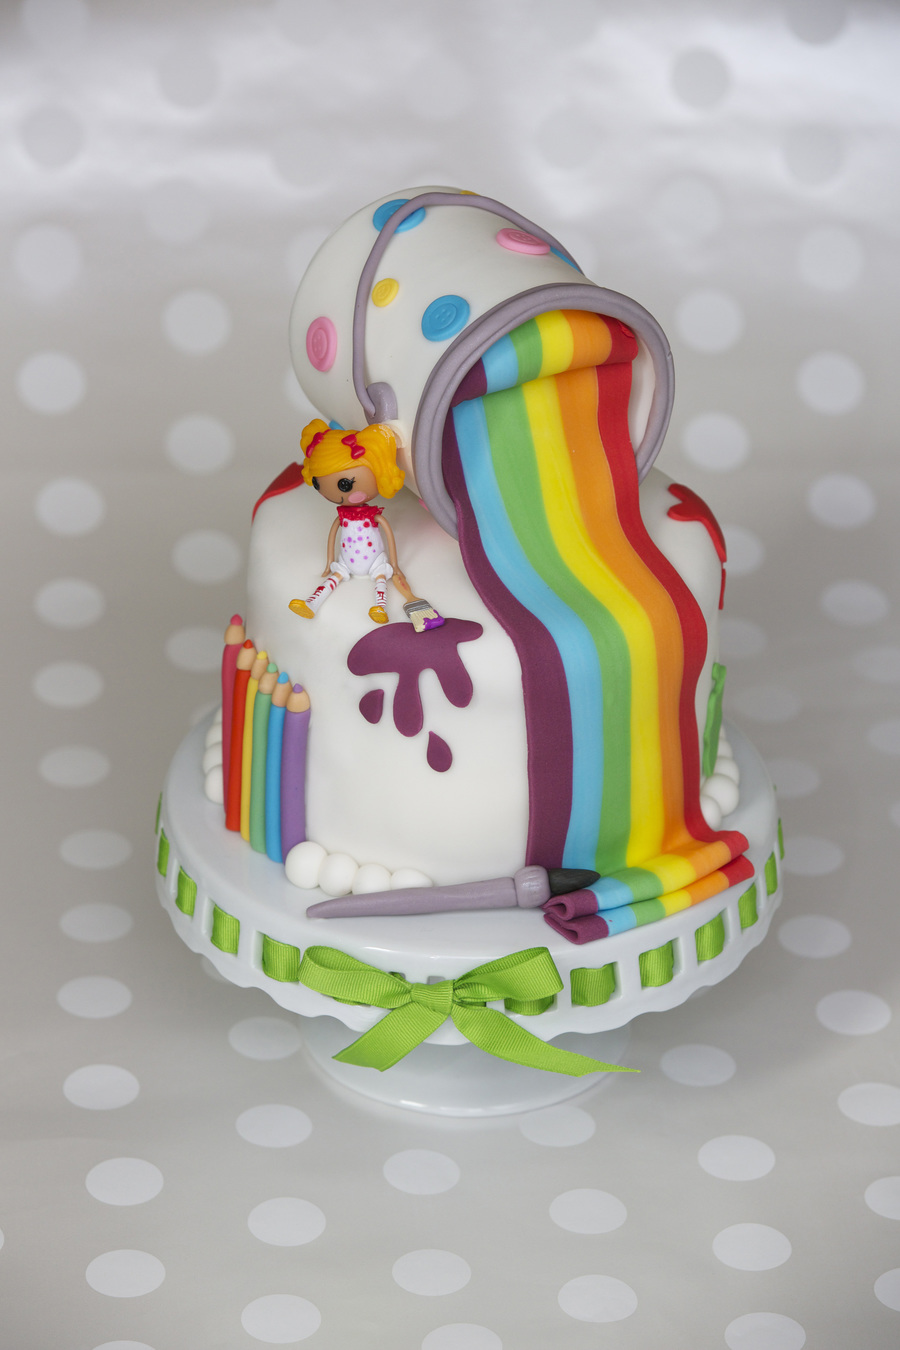 Lalaloopsy Art Cake on Cake Central